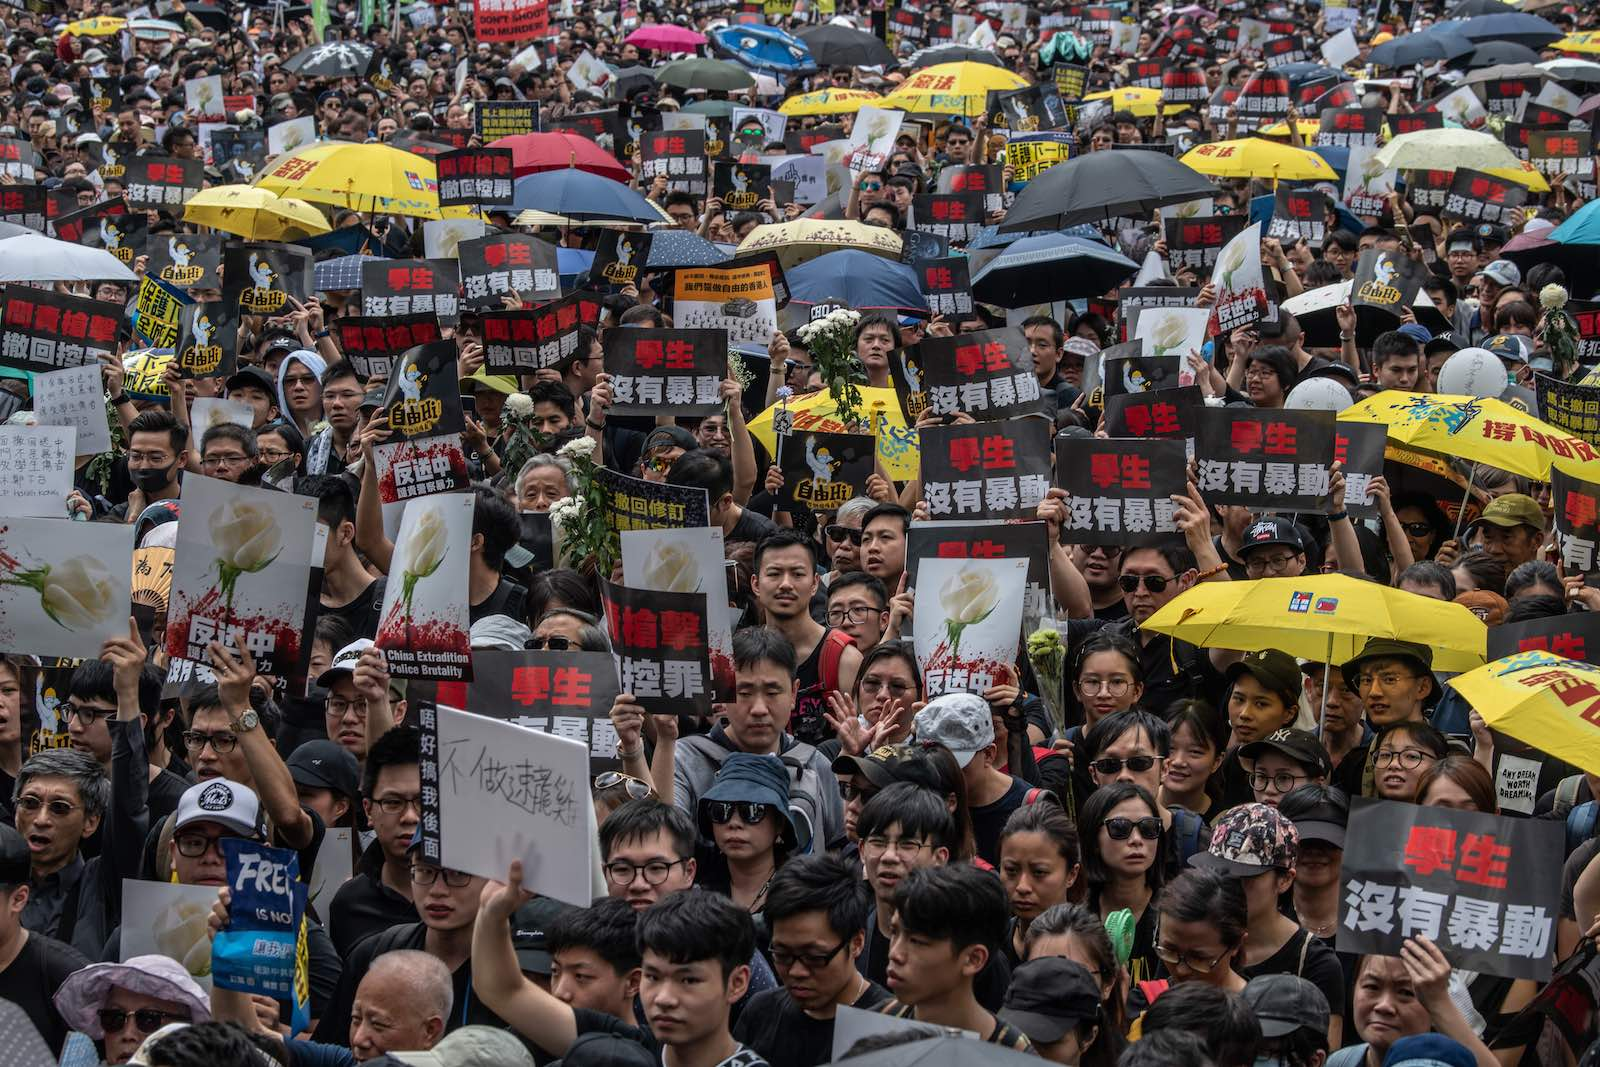 Protests continued on Sunday despite an announcement by Hong Kong's Chief Executive Carrie Lam the controversial extradition bill will be suspended indefinitely (Photo: Carl Court/Getty)